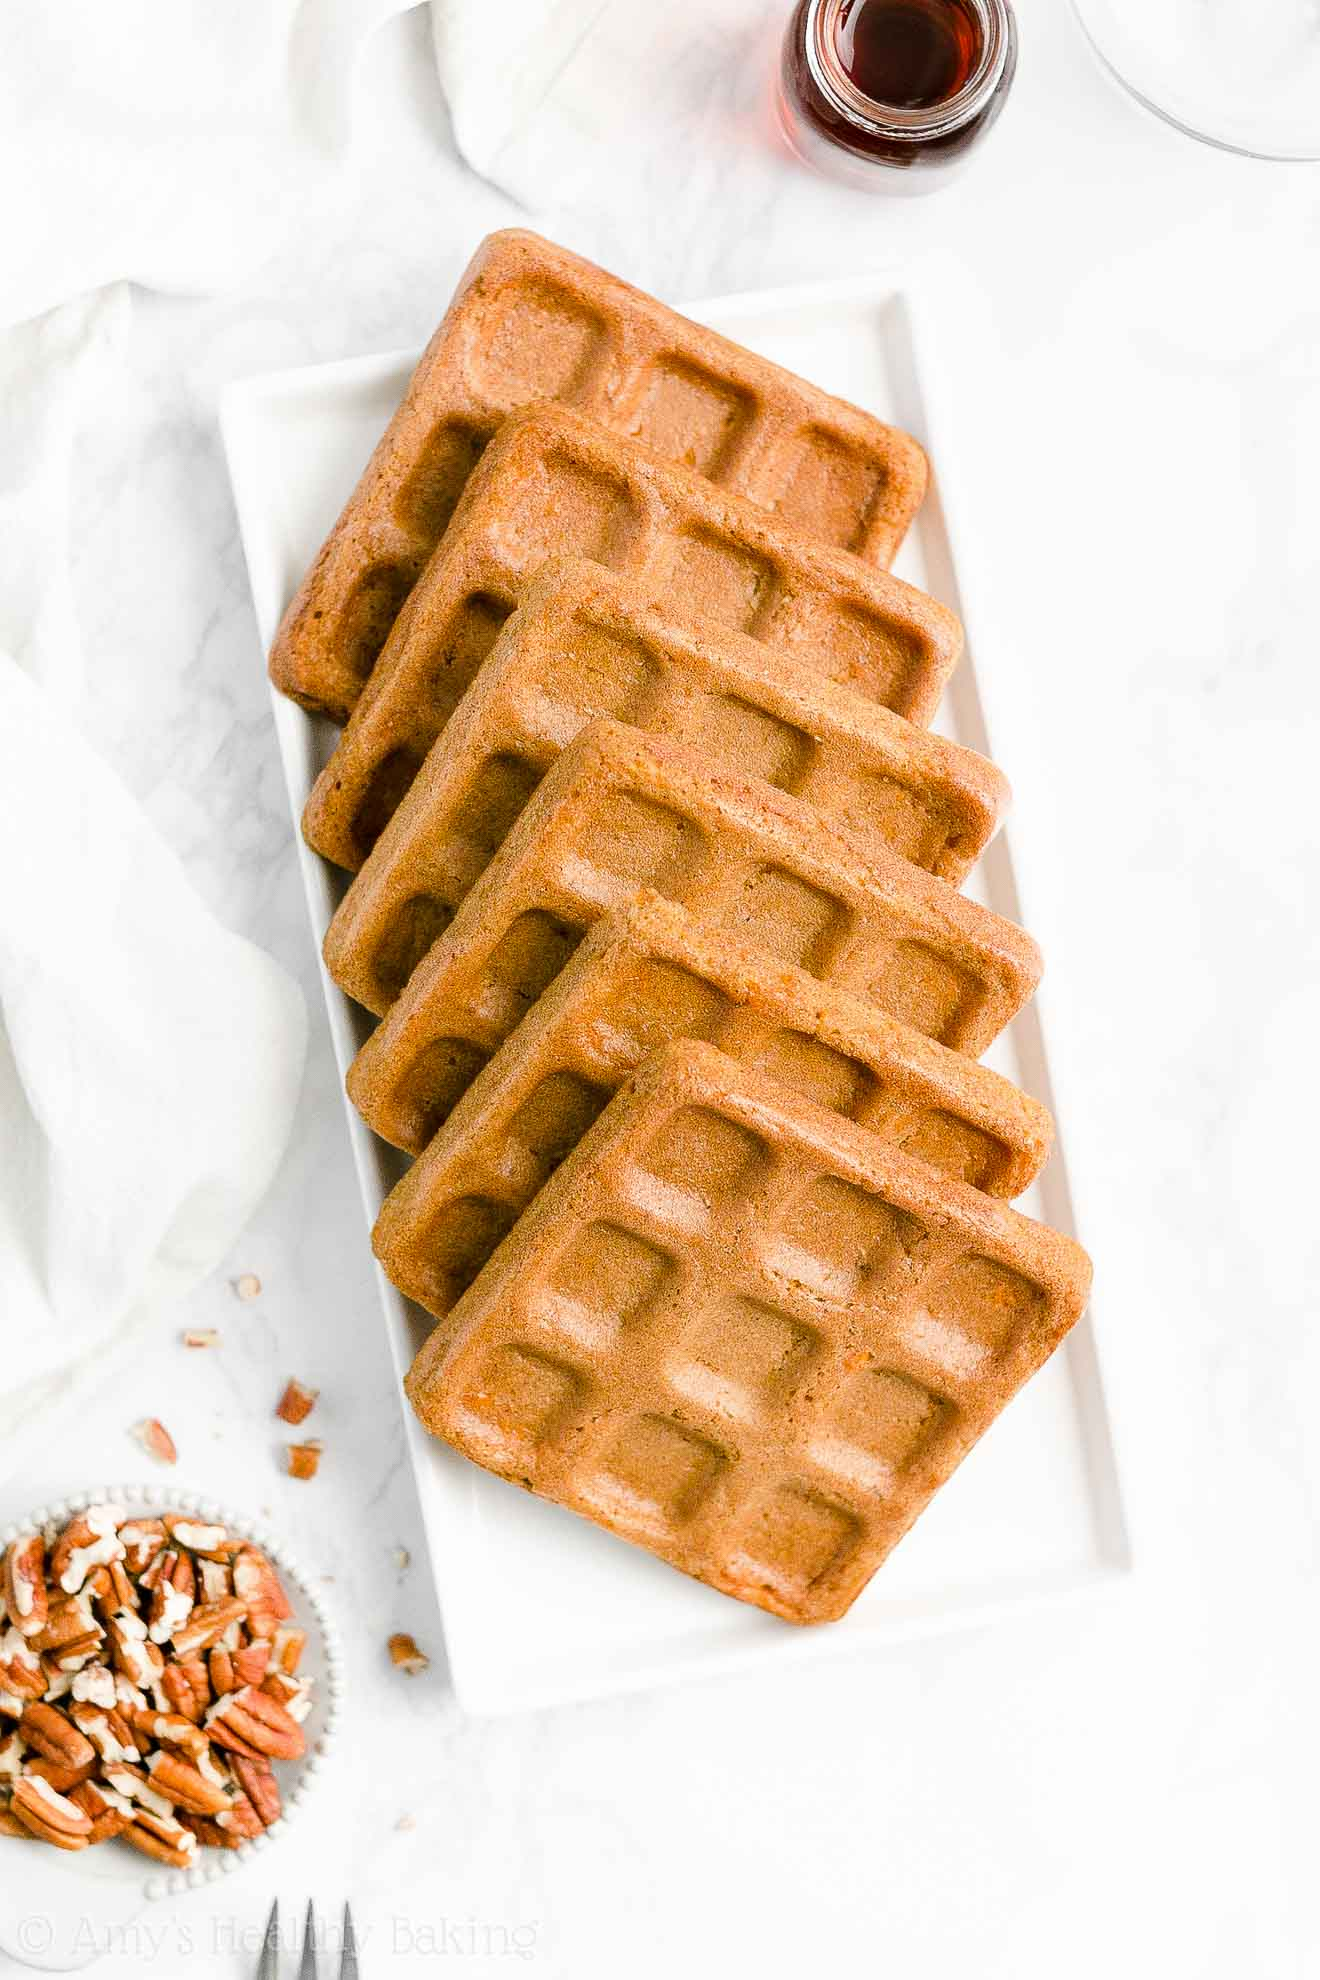 Best Easy Healthy Homemade Fluffy Crispy Carrot Cake Waffles for Easter Brunch